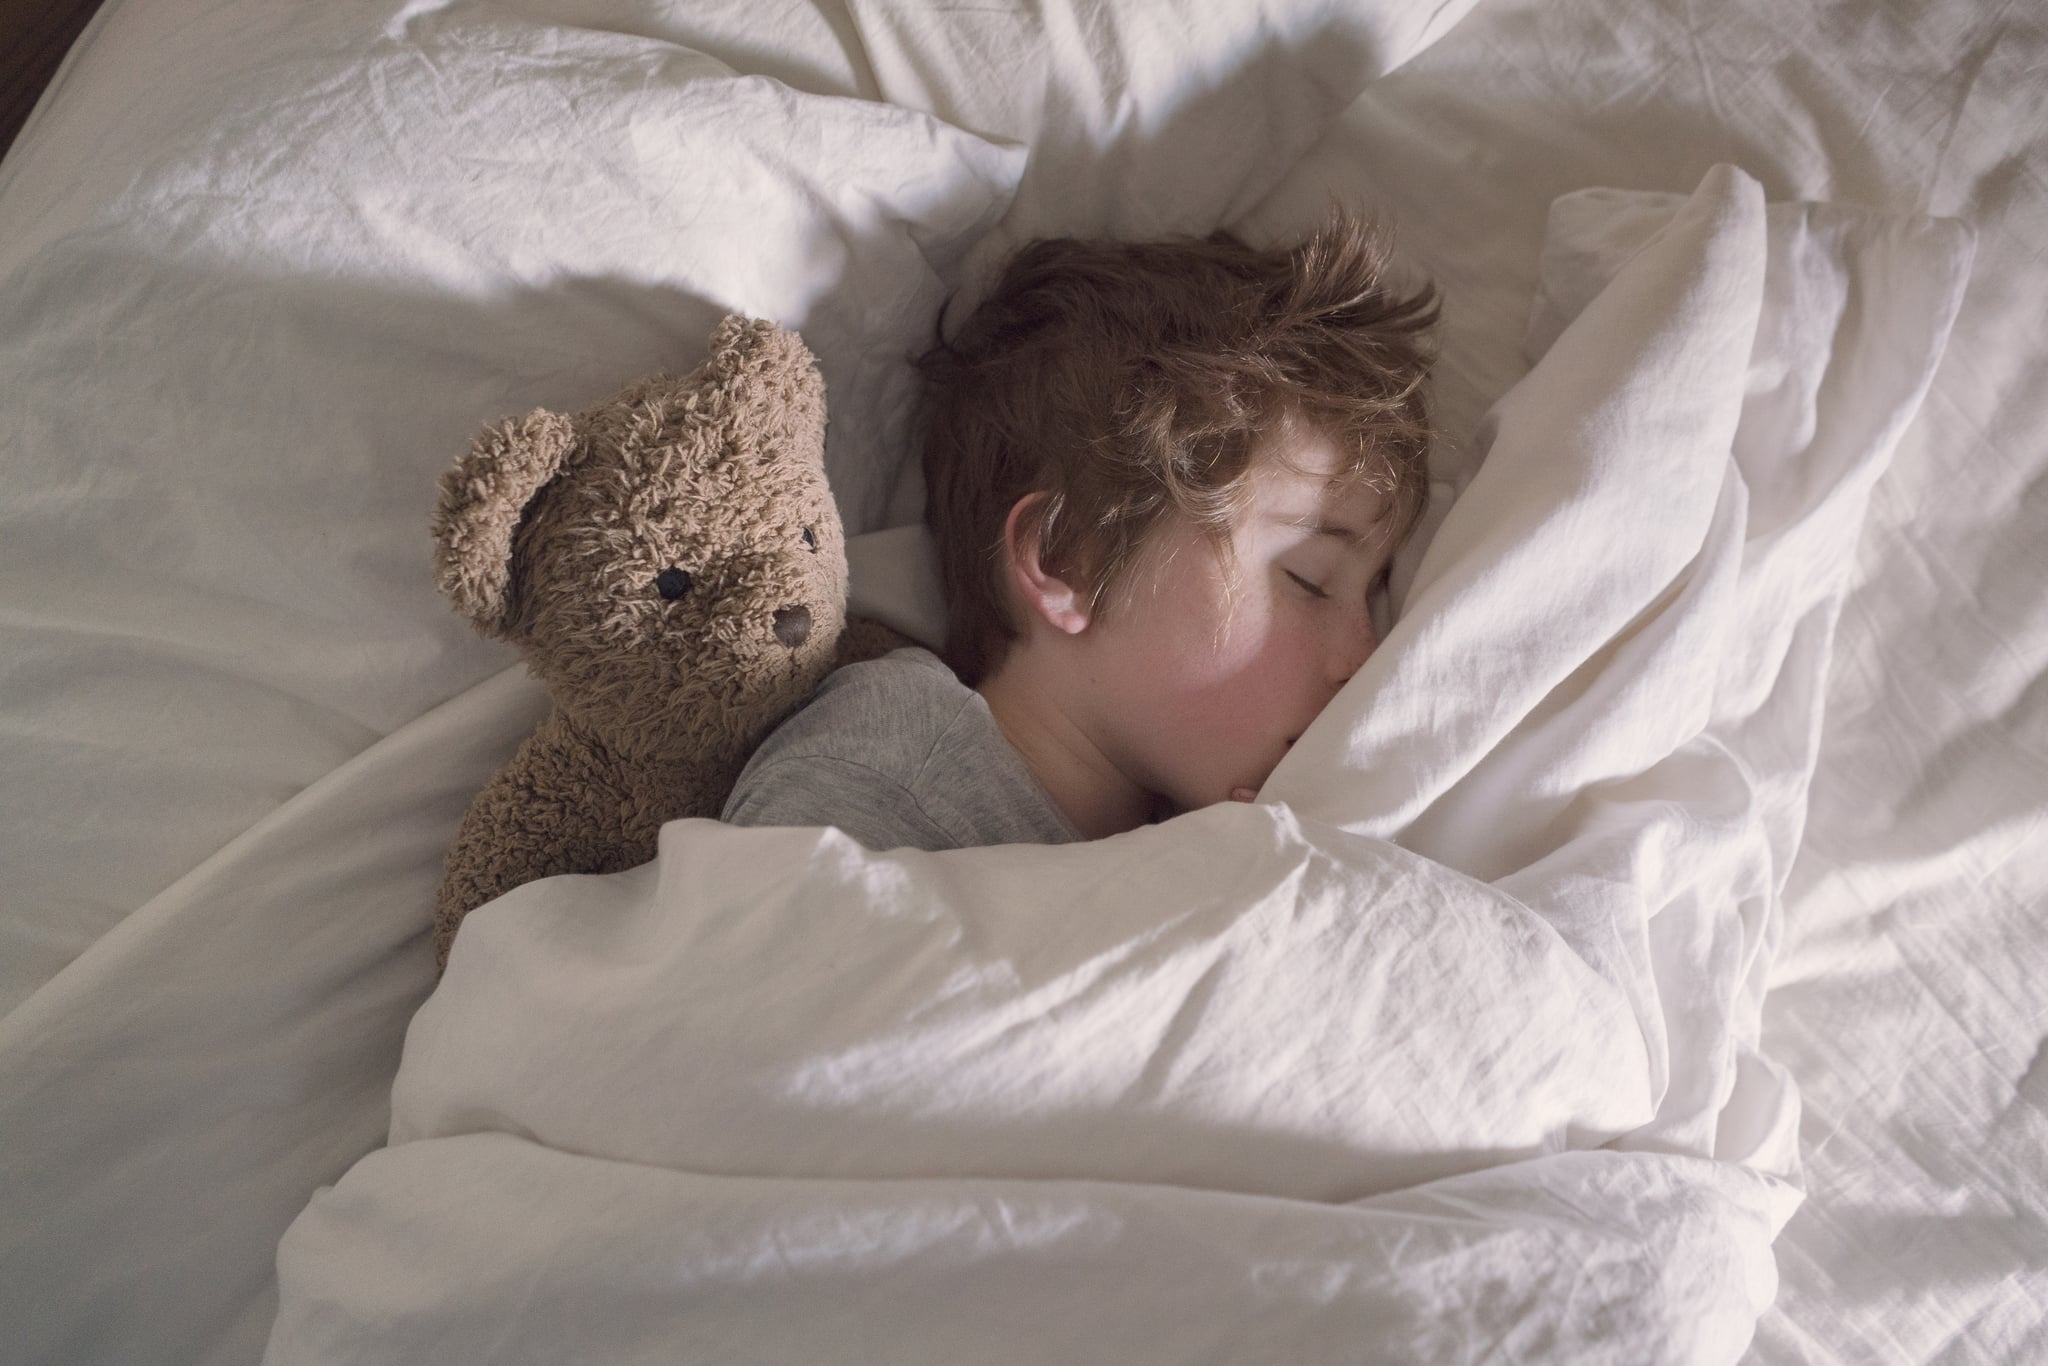 A boy sleeping alone in his parent's bed with his teddy bear.